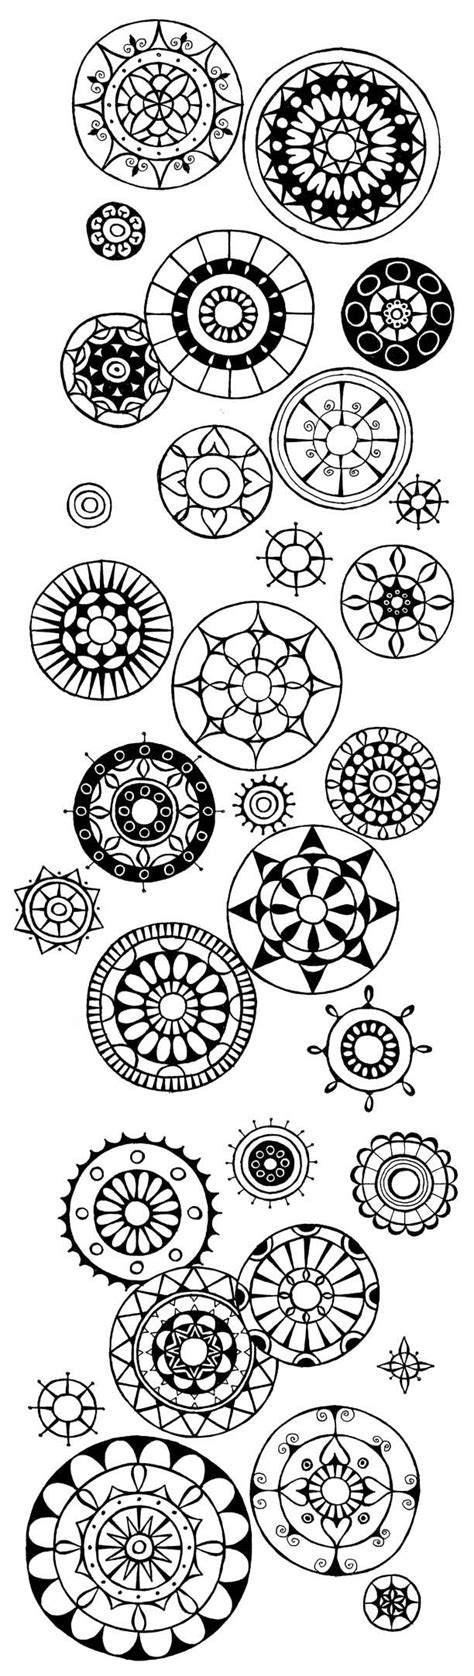 free doodle pattern printables 17 best images about coloring pages on pinterest